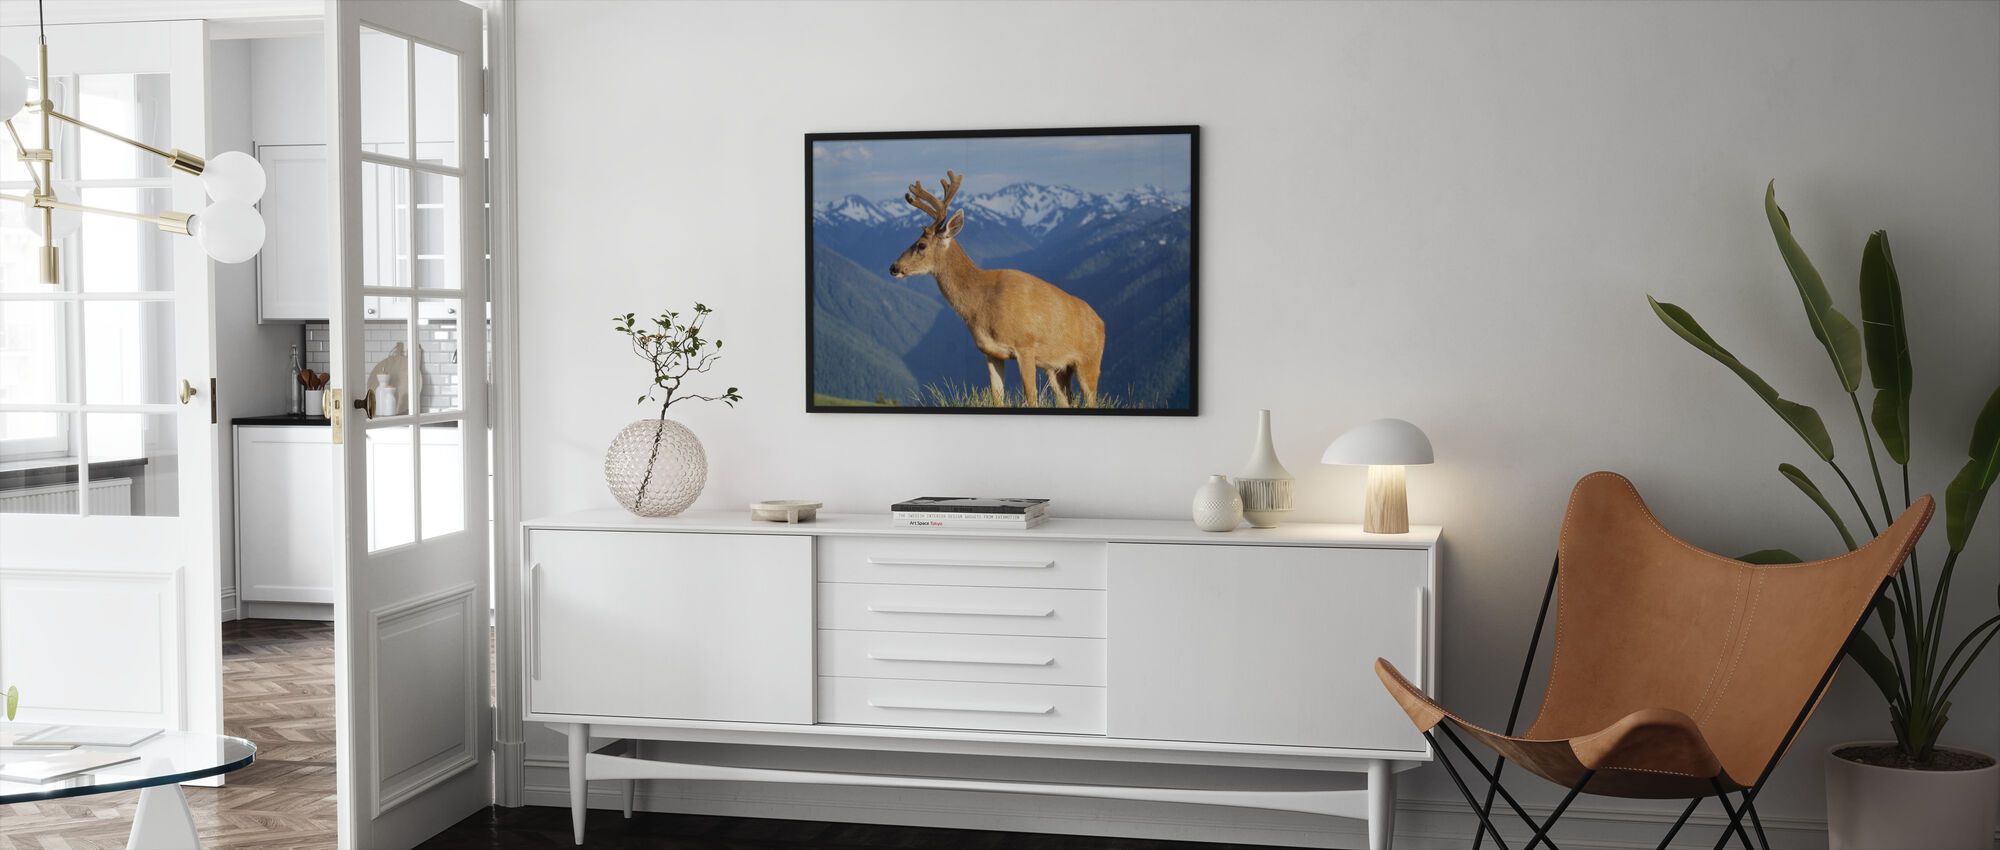 Reindeer and Mountains - Framed print - Living Room